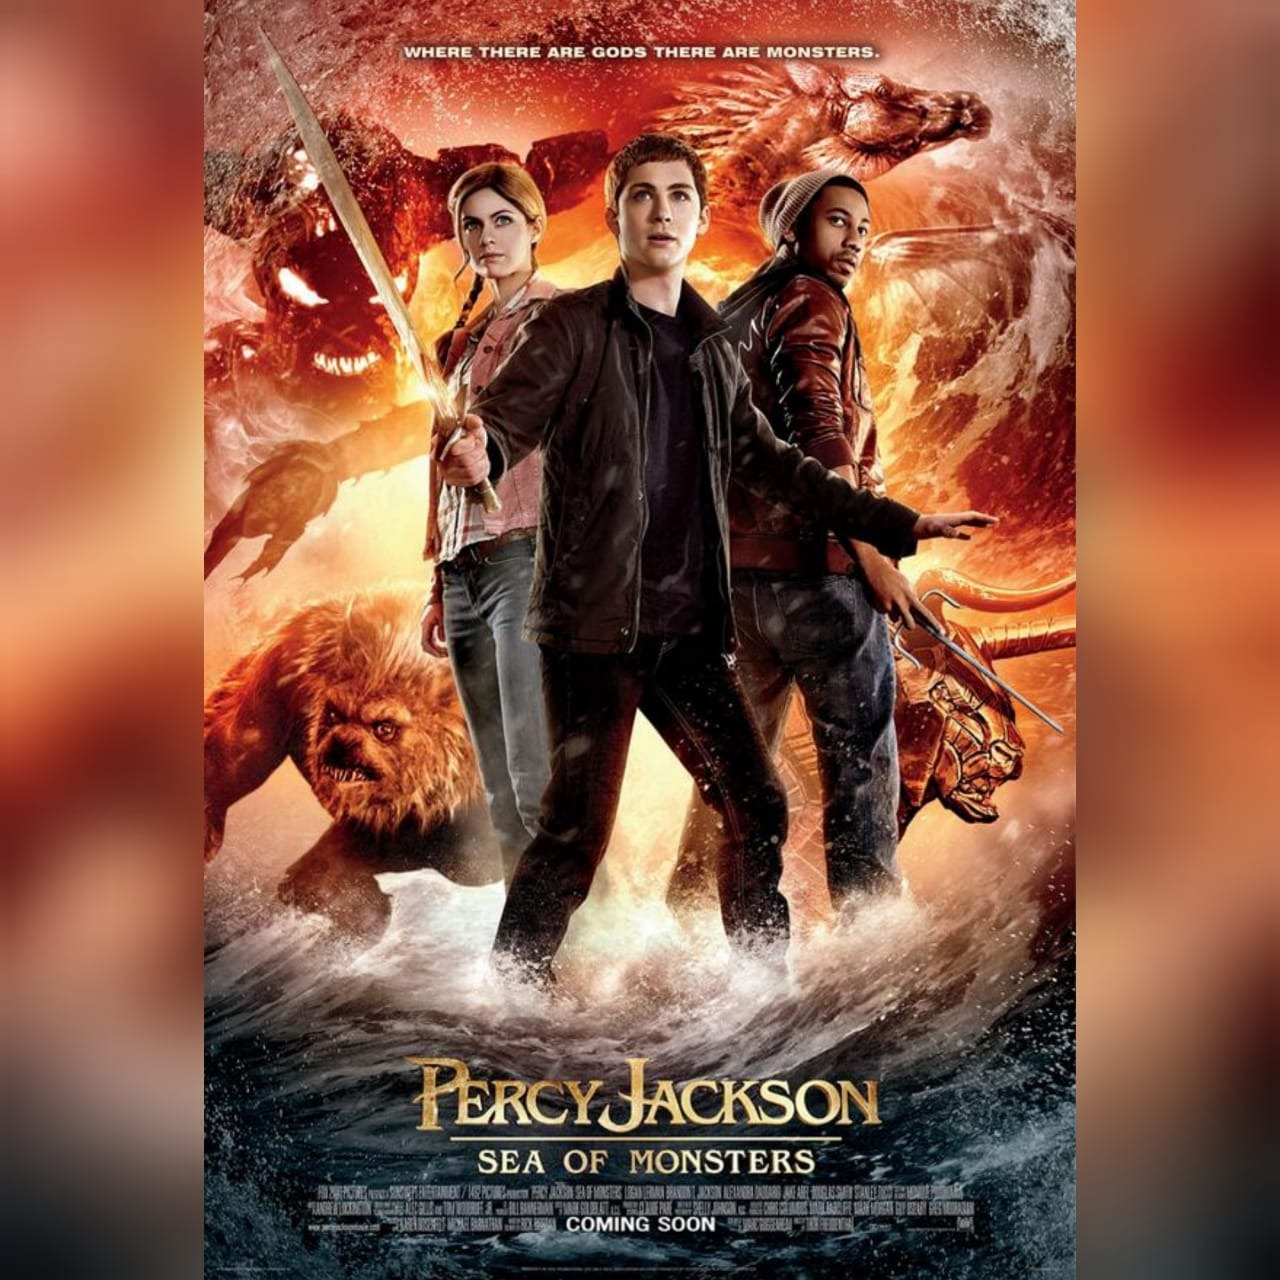 PERCY JACKSON REGRESARÁ CON DISNEY+